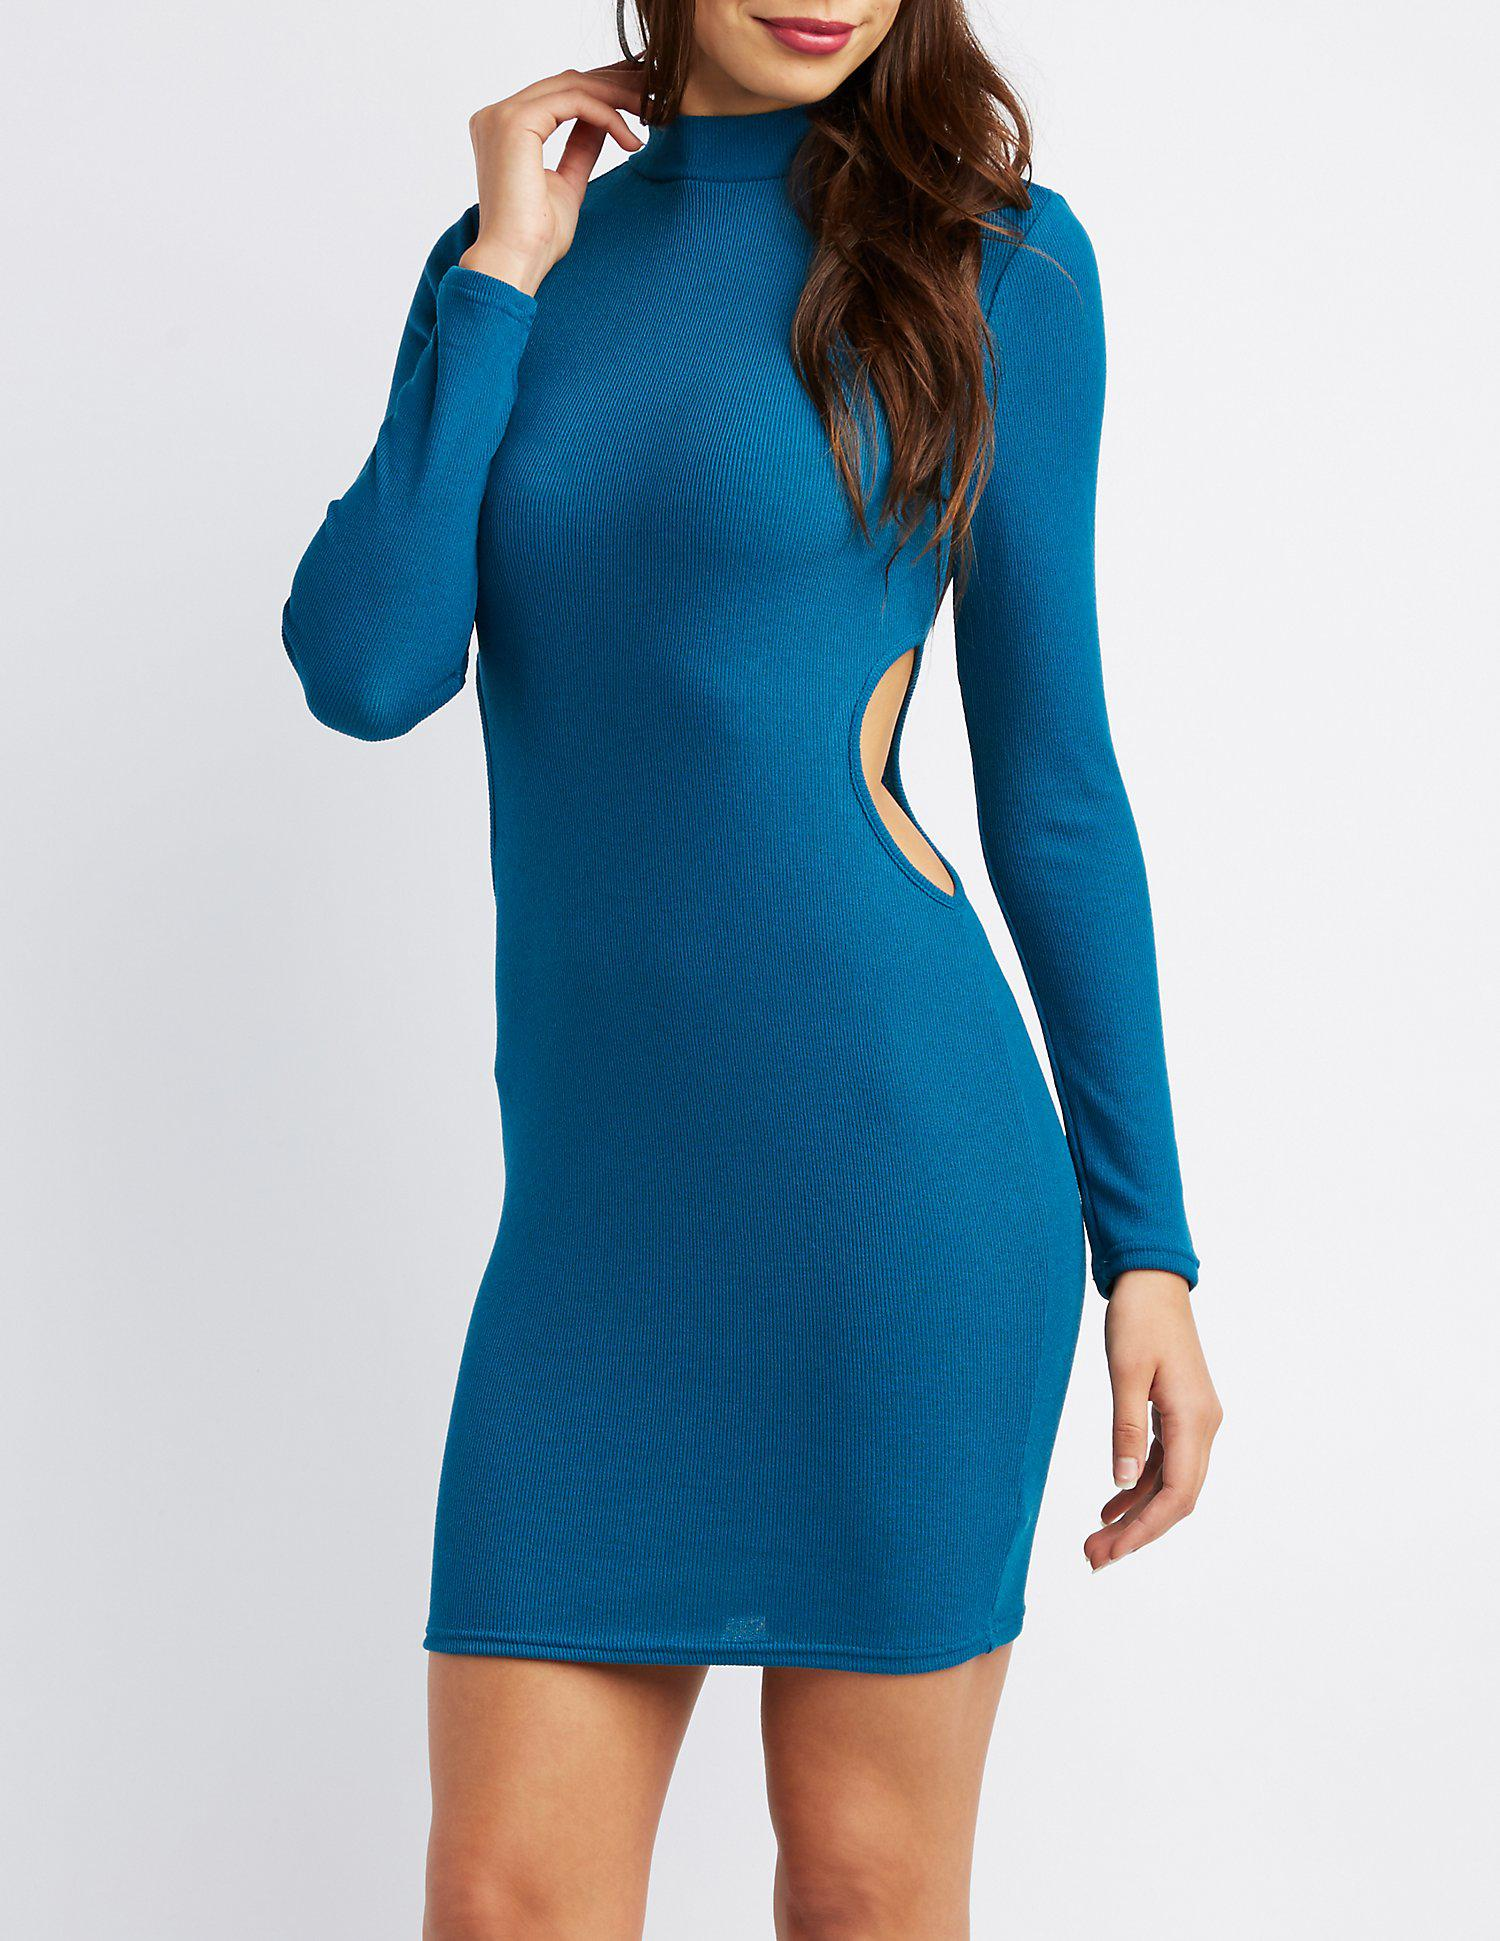 b68698e11184 Lyst - Charlotte Russe Mock Neck Cut-out Bodycon Dress in Blue